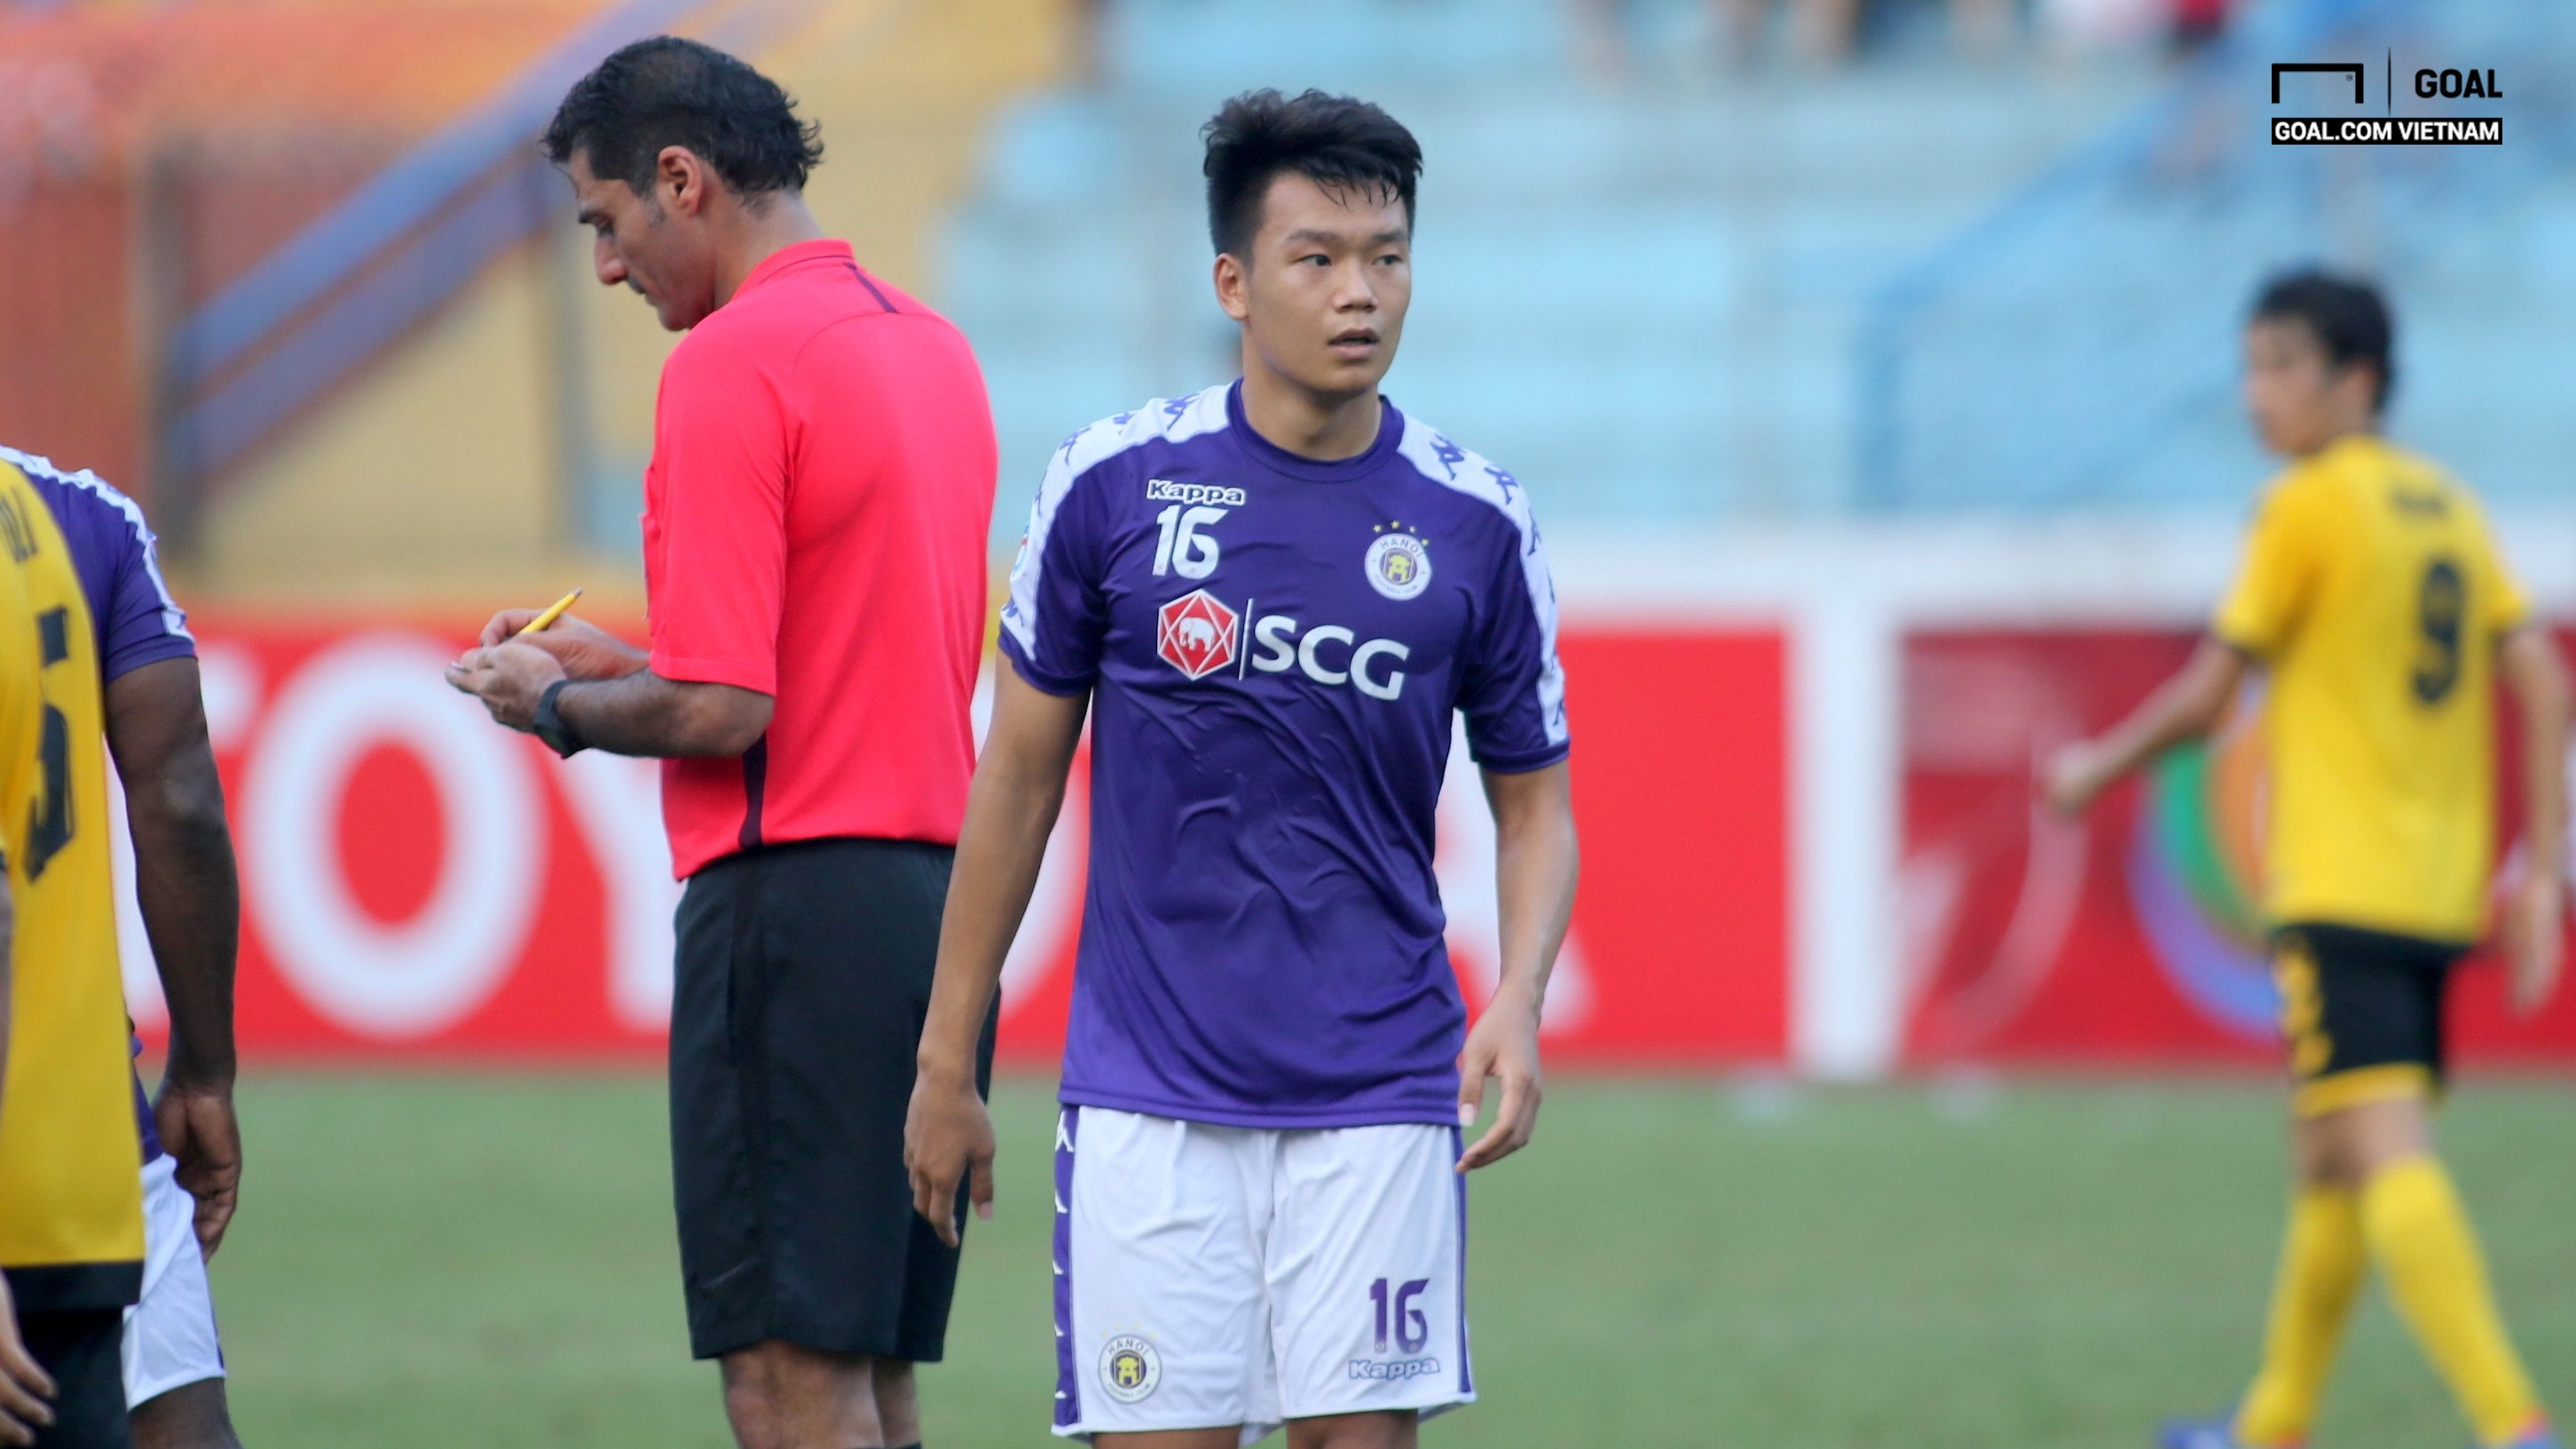 Nguyen Thanh Chung Ha Noi FC vs Tampines Rovers Group F AFC Cup 2019